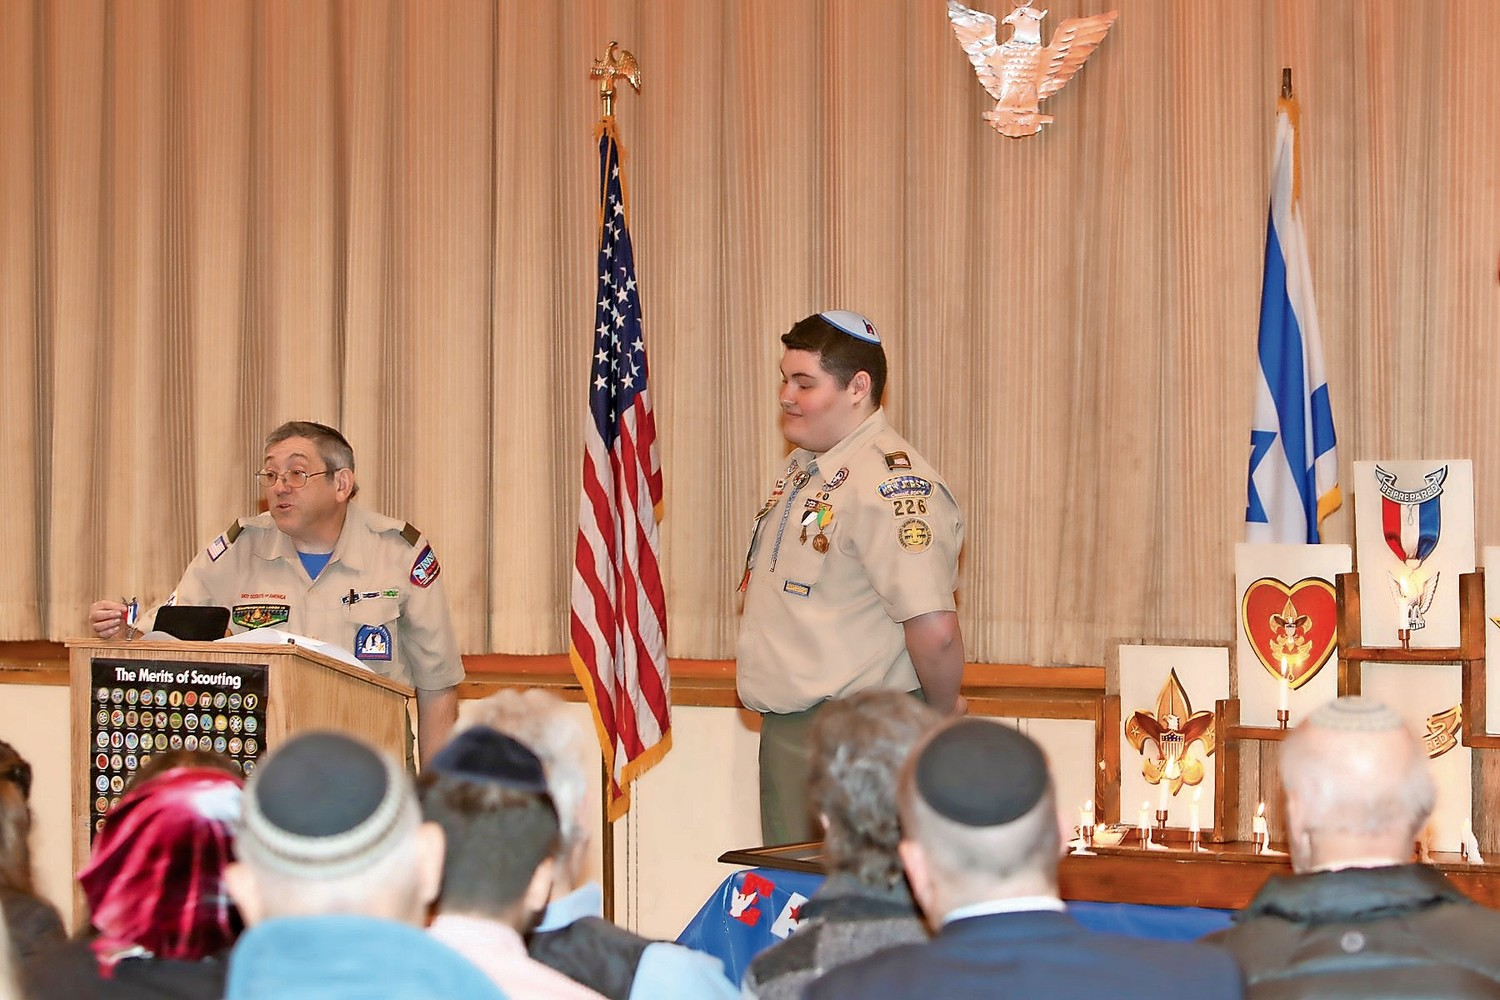 Danny Chazin, a scout master, speaks at Joshua Dorfman's eagle scout ceremony.